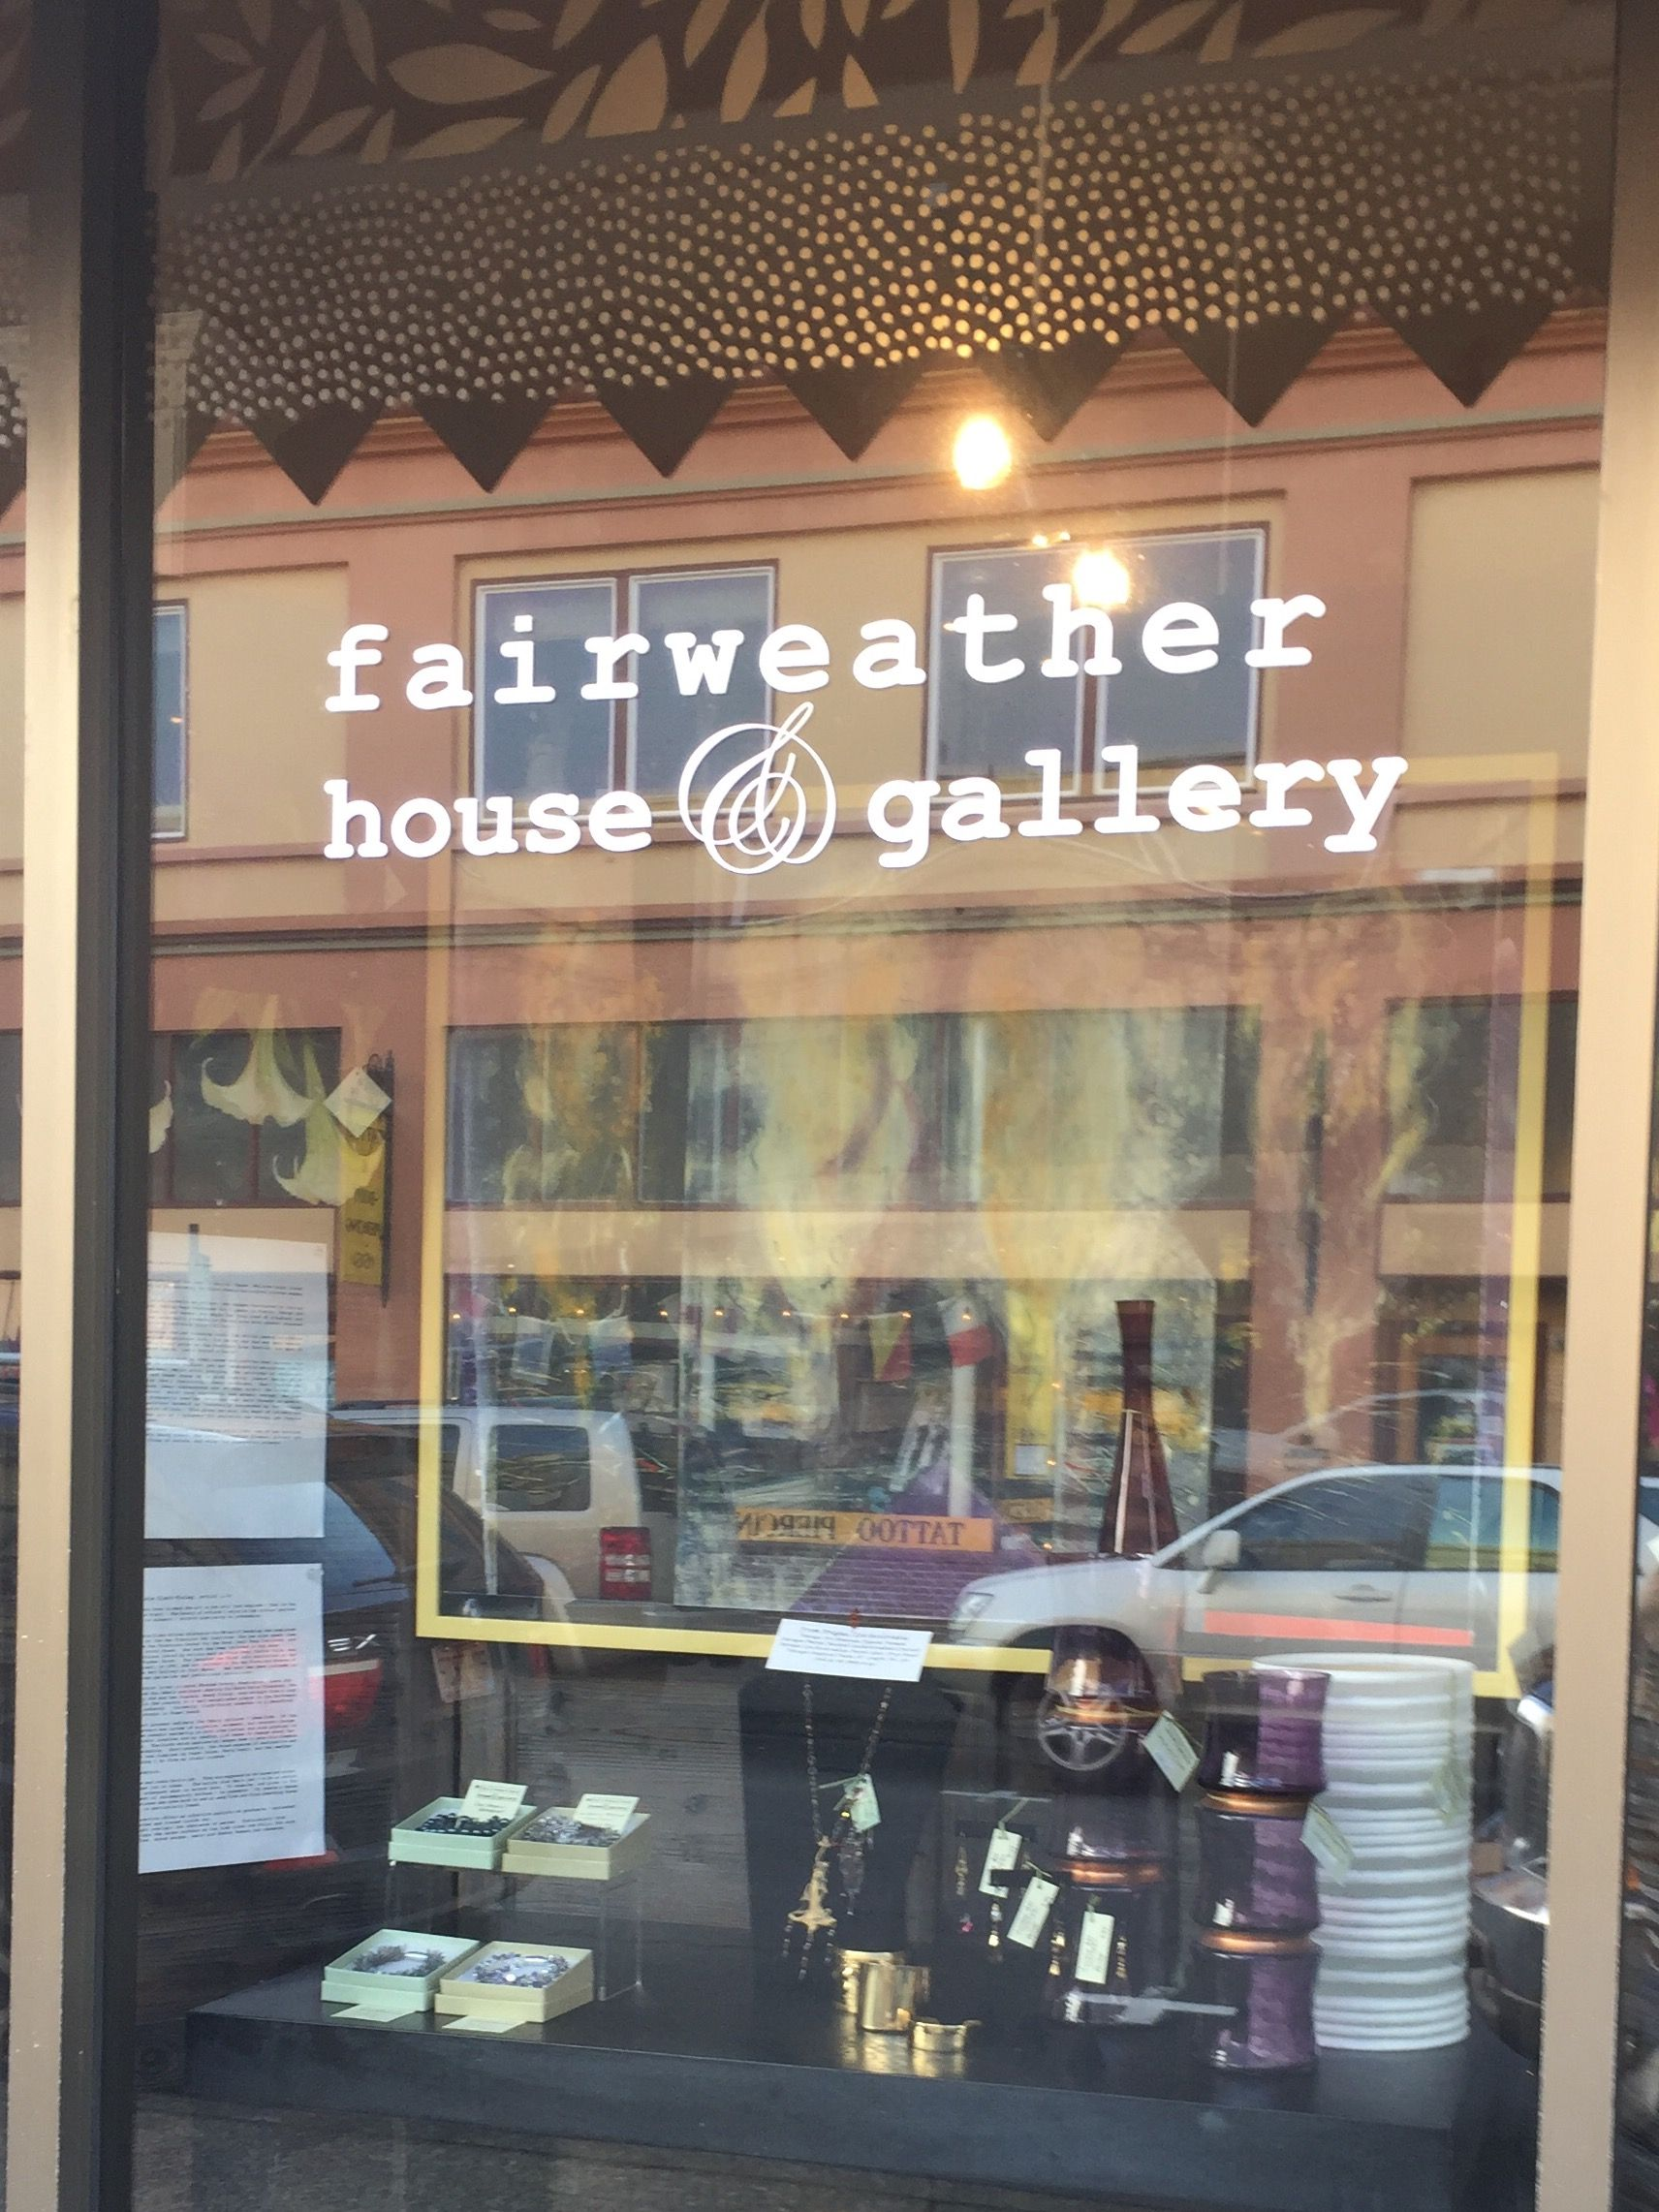 Starting 2017, you can find us at the Fairweather House & Gallery in Seaside Oregon! www.sandyriverjewelry.com